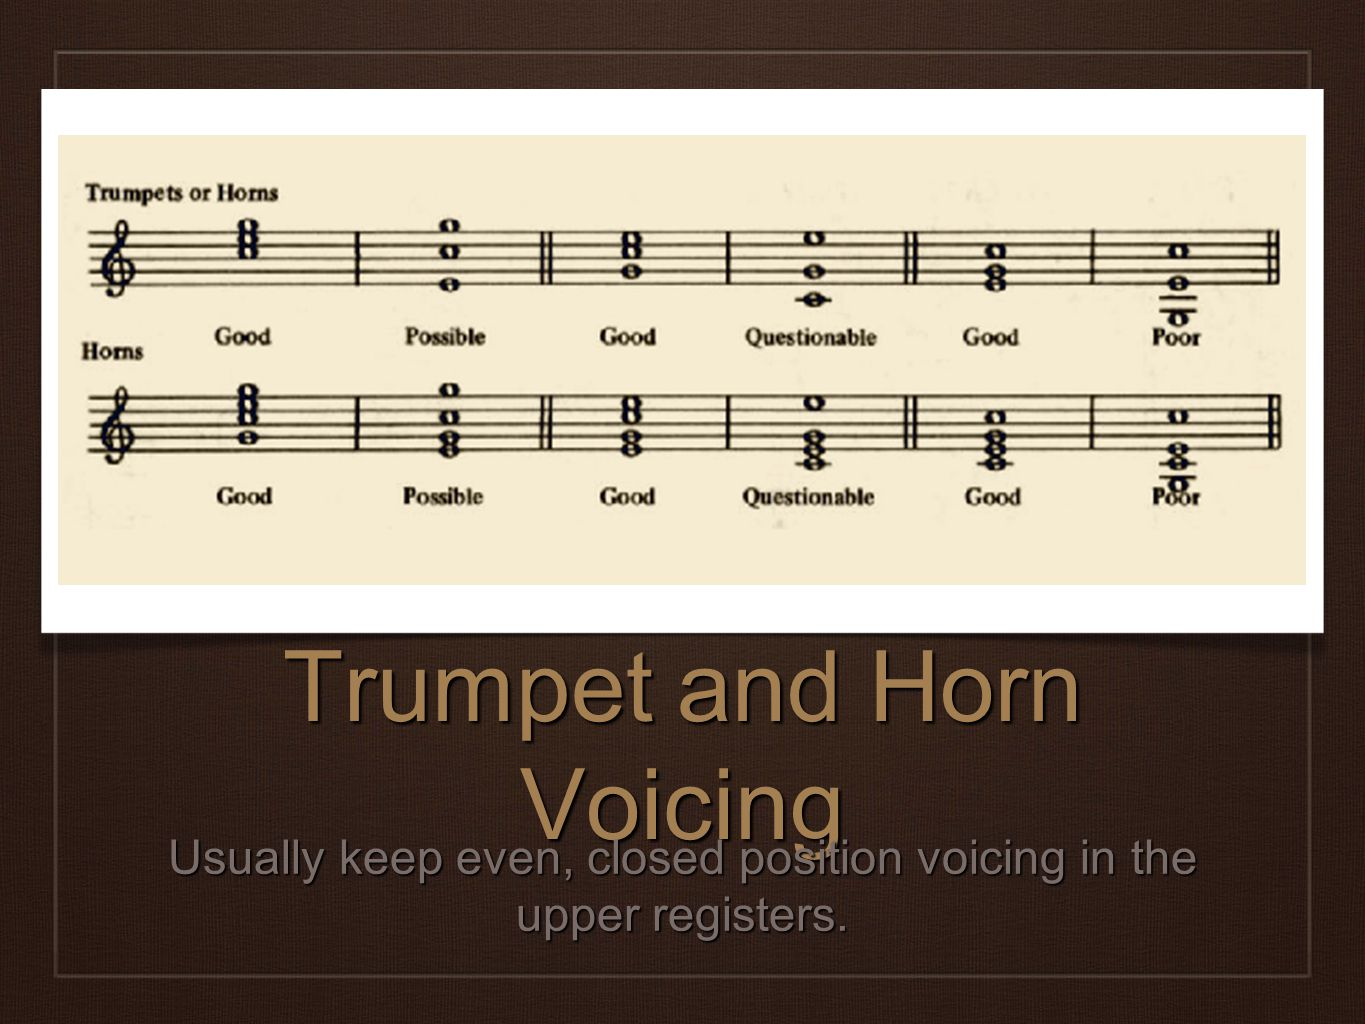 Trumpet and Horn Voicing Usually keep even, closed position voicing in the upper registers.